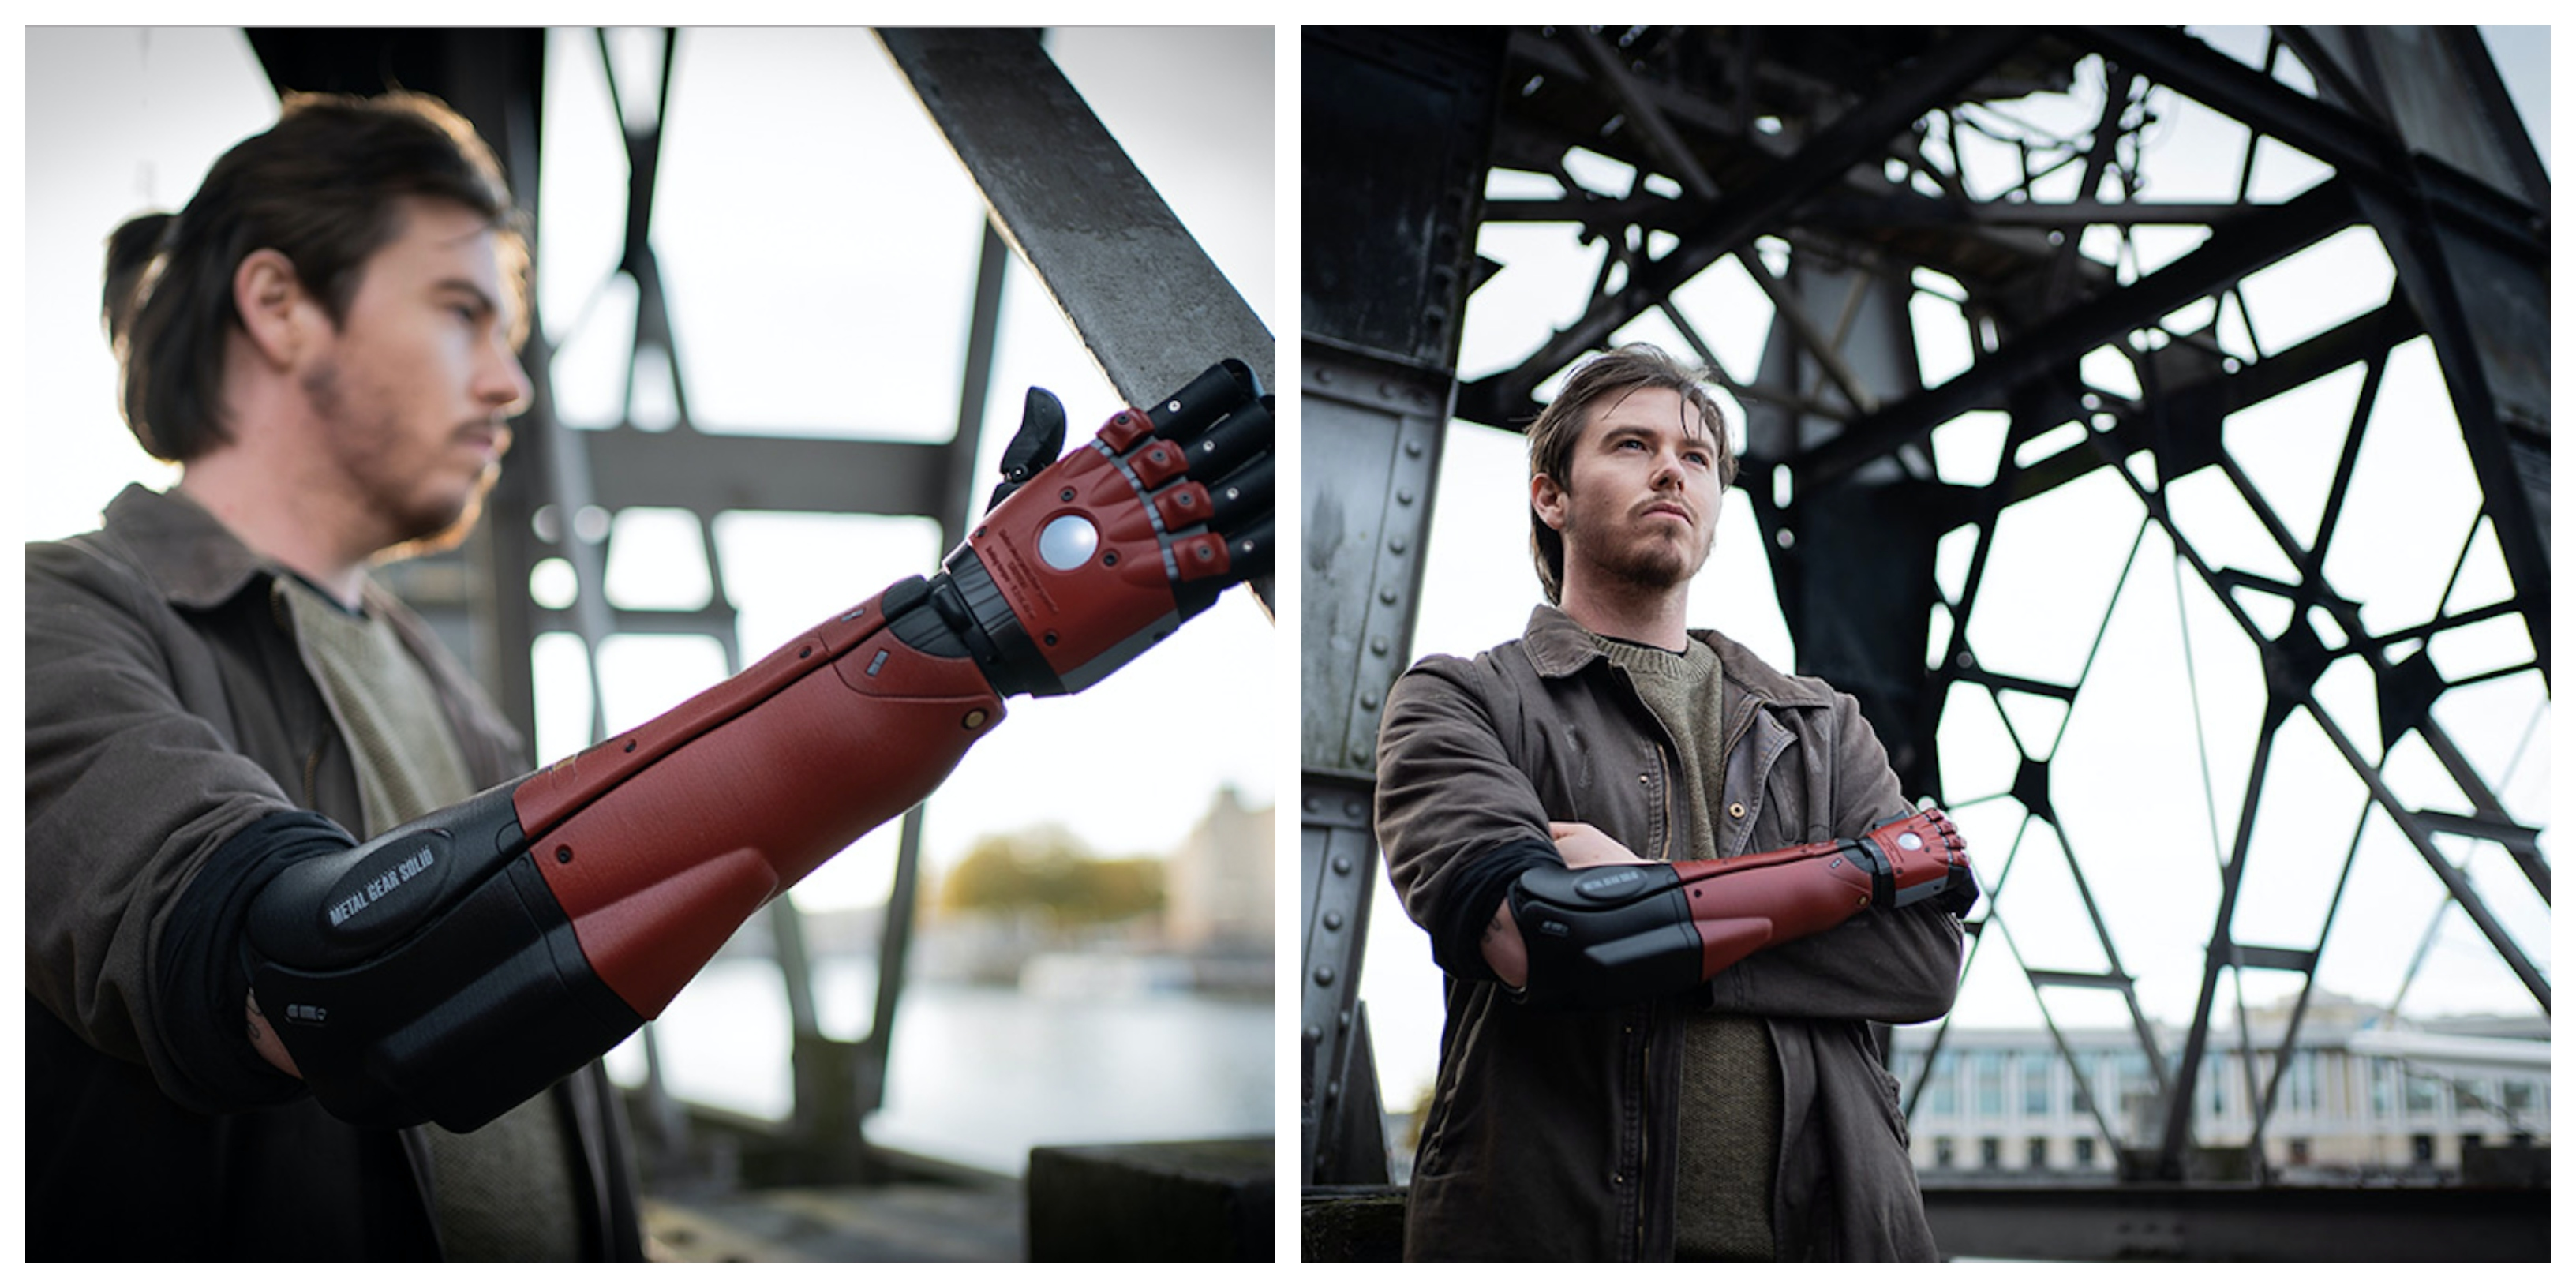 Konami teamed up with Open Bionic, to launch a red and black 3D printed bionic arm inspired by the Metal Gear Solid (MGS) video game character Venom Snake. Photo via Open Bionic.